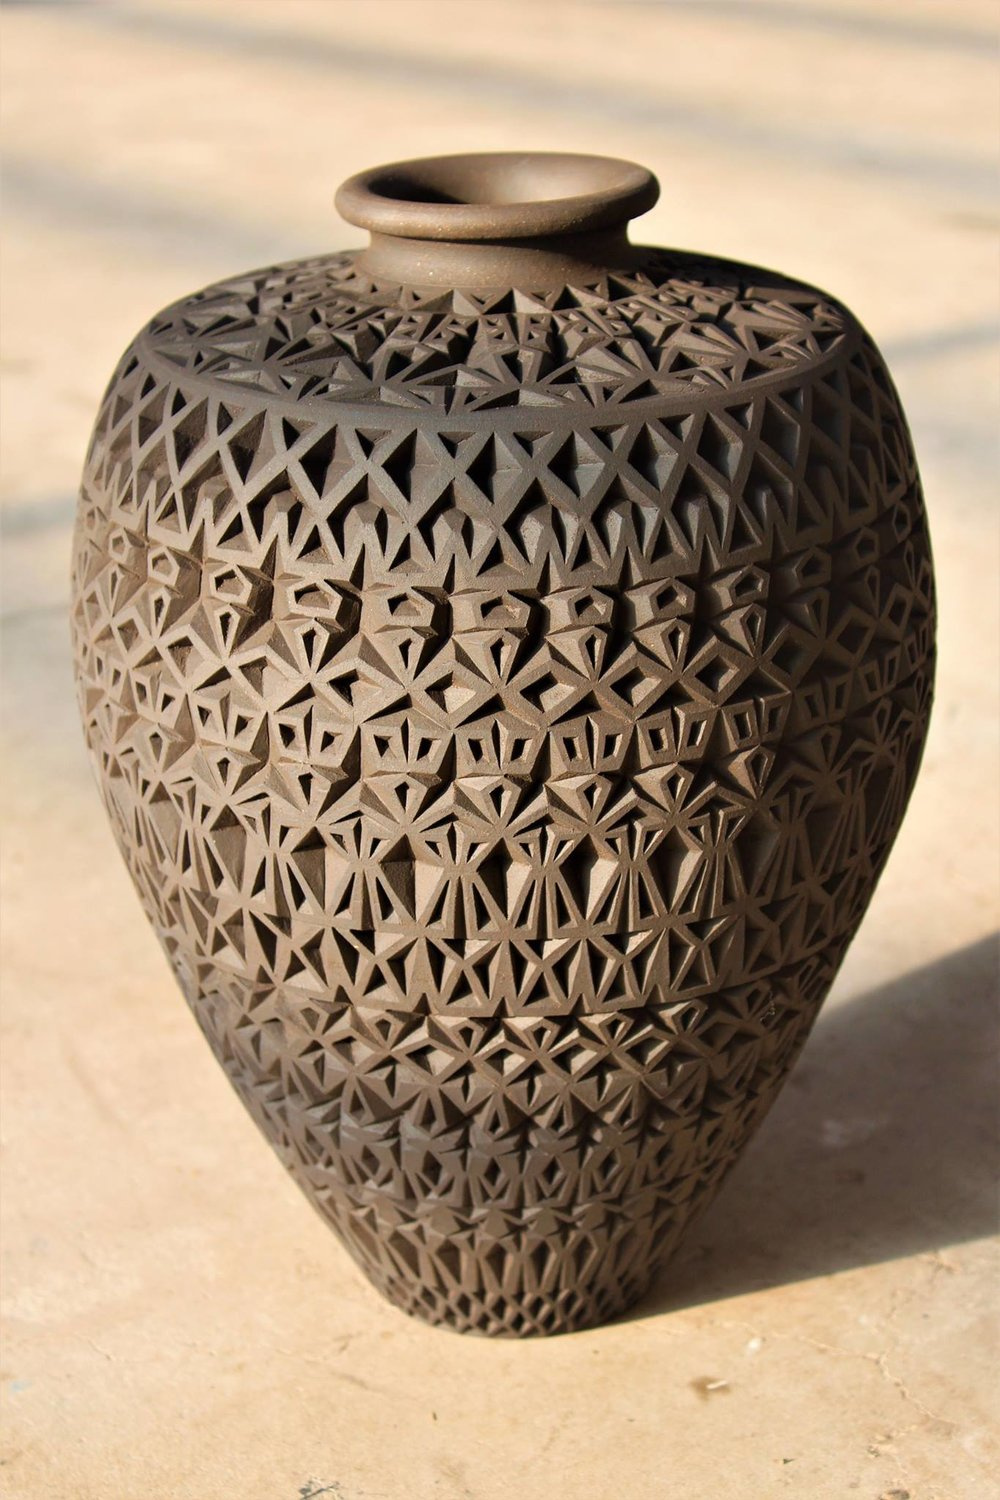 carved ceramics 1.jpg